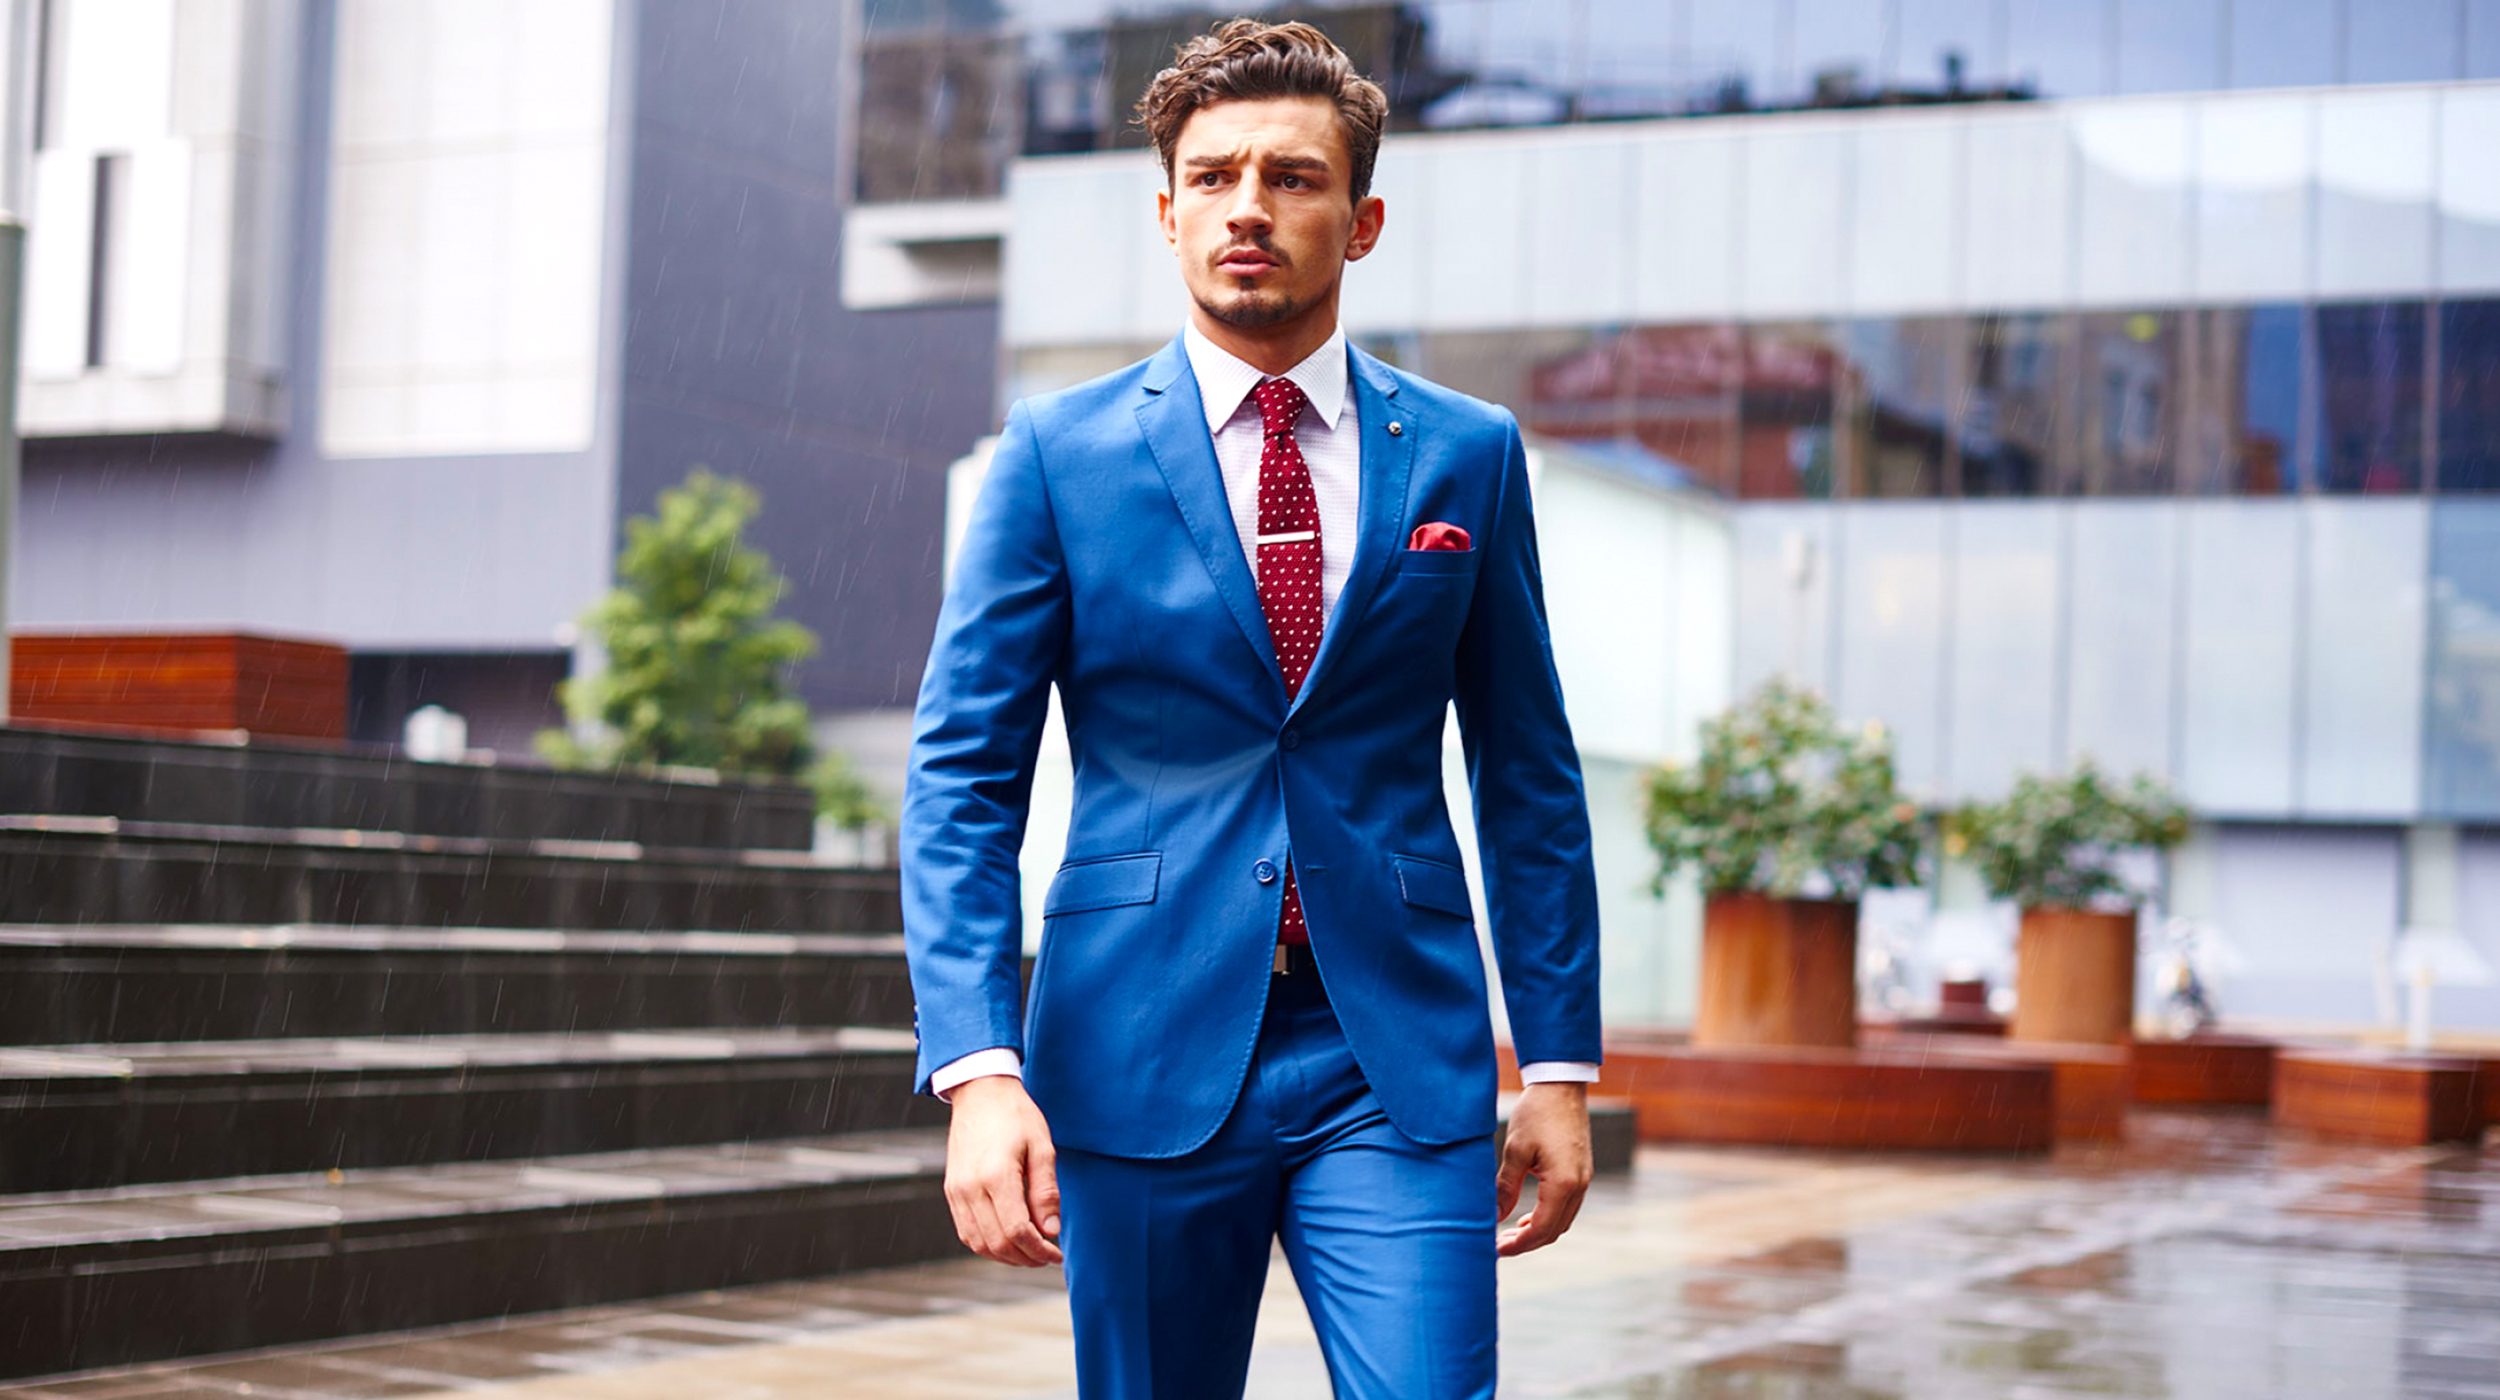 Blue suit matched with a white shirt and a red tie